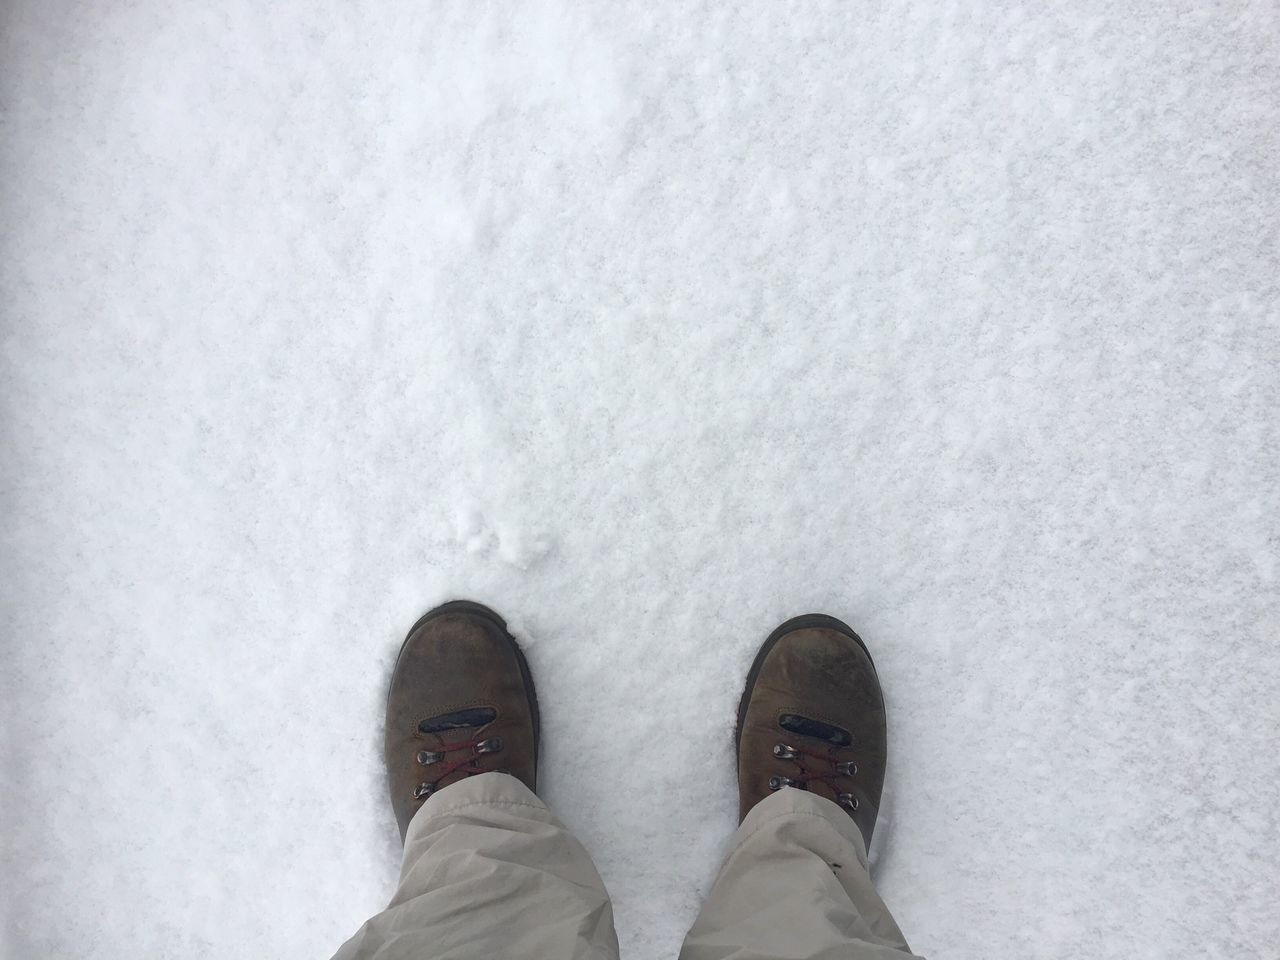 Low Section Shoe Standing Human Leg Personal Perspective Human Body Part Lifestyles One Person Close-up Snow Winter Cold Temperature Day Outdoors One Man Only Snow ❄ Fresh Snow First Outside Photography Nature Footsteps Legs Shoes ♥